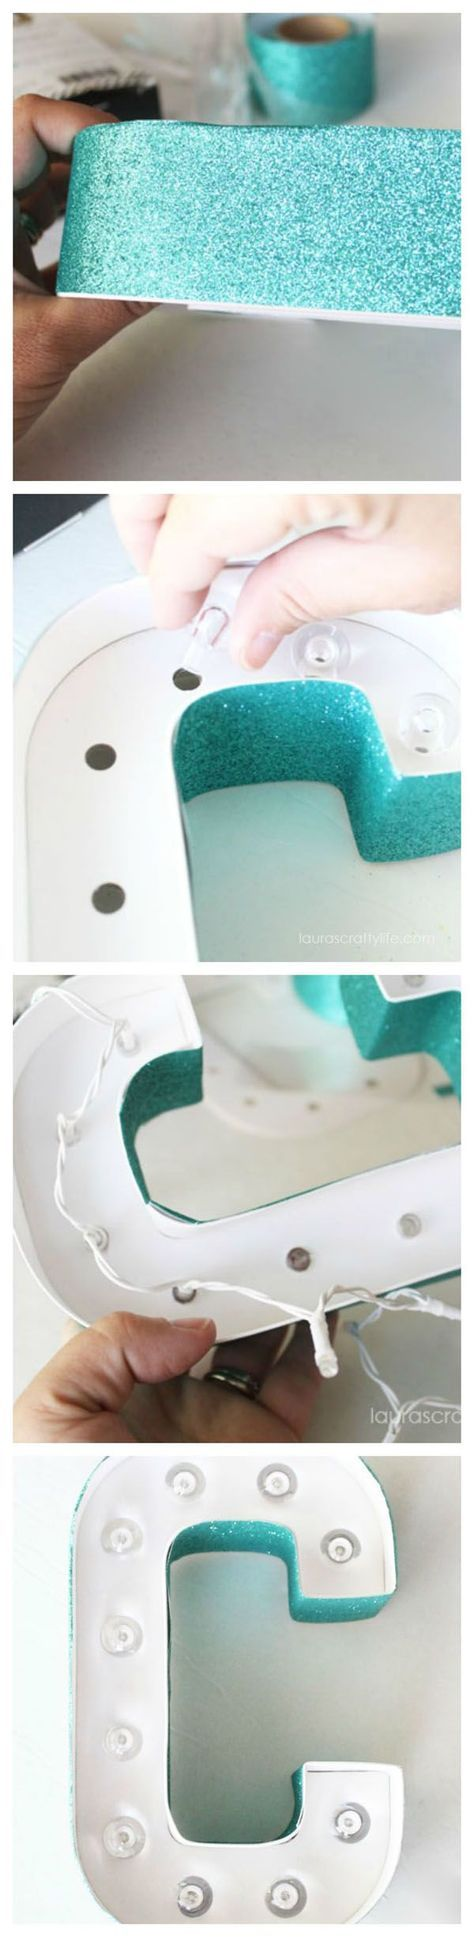 Decorate Heidi Swapp Marquee Love Letters with Glitter Tape